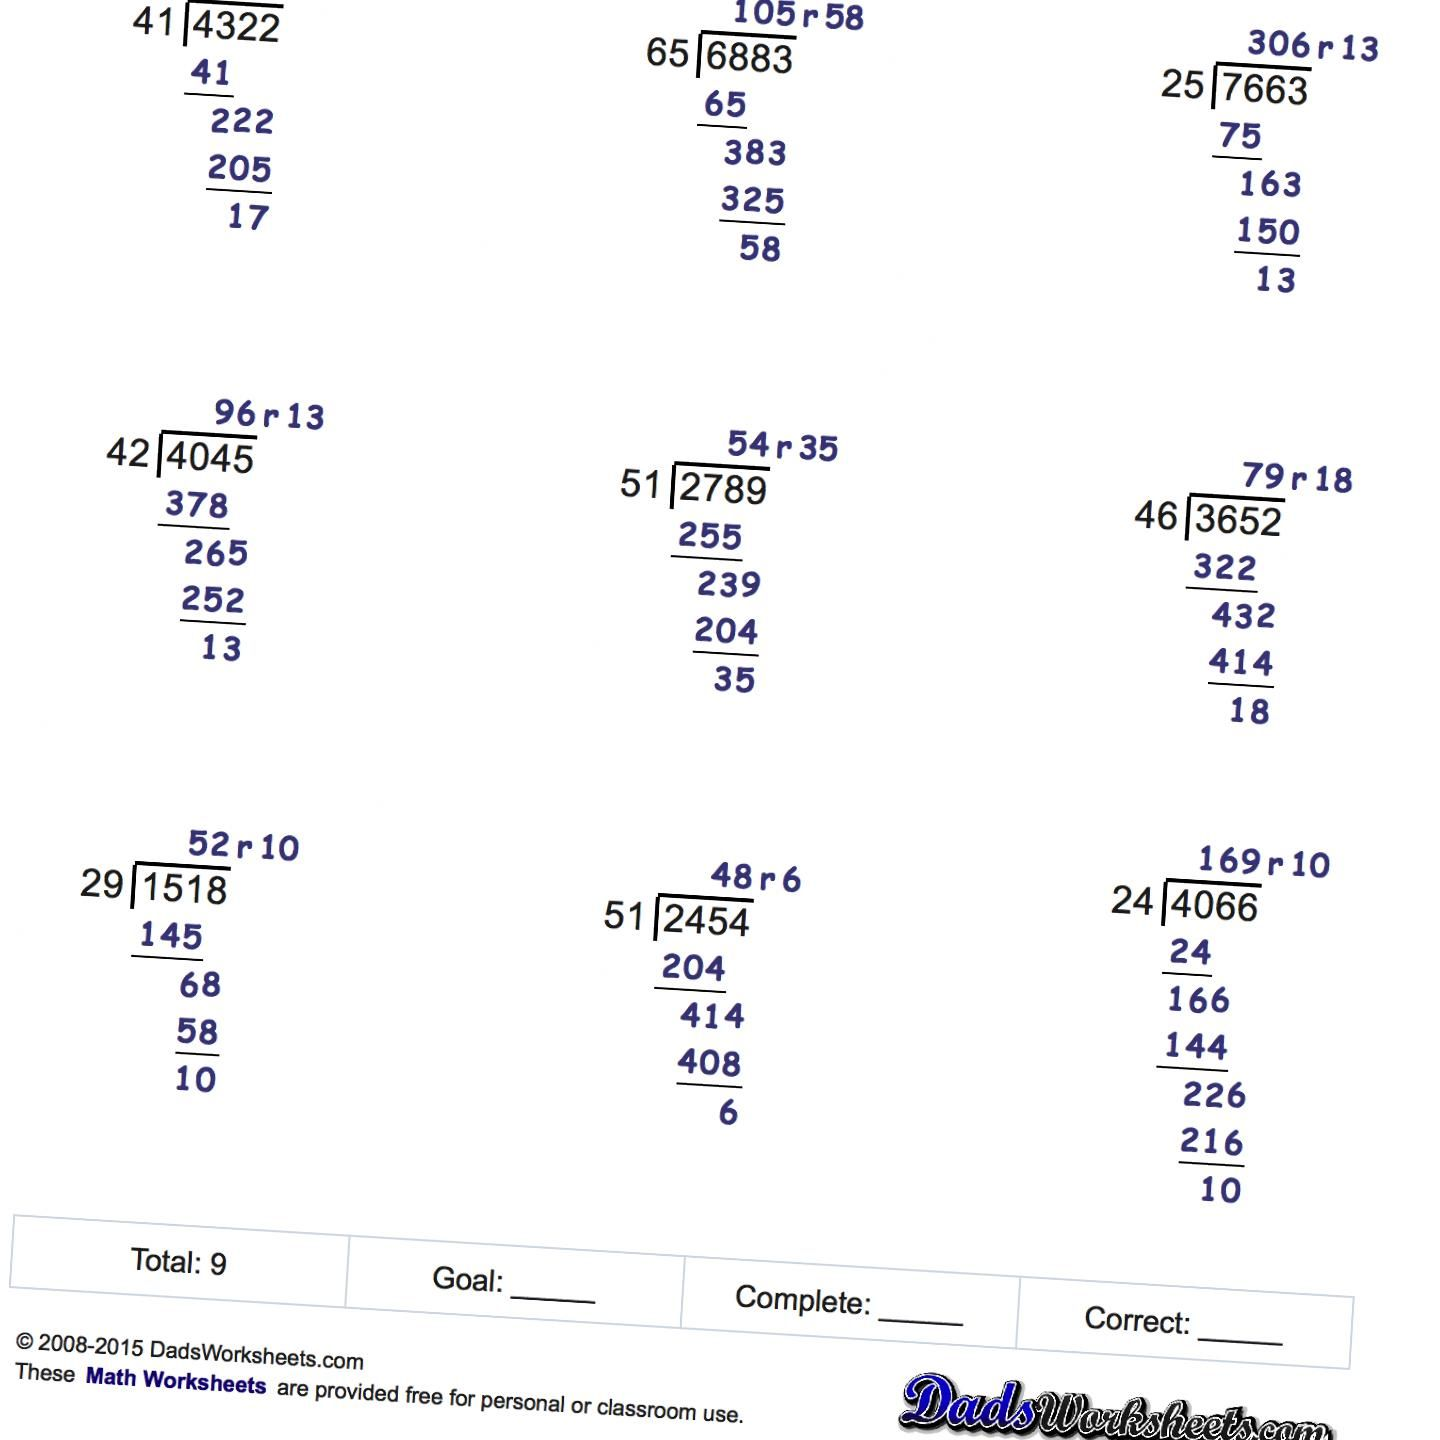 hight resolution of 12 Best Double Digit Division Worksheets 5th Grade images on Best Worksheets  Collection